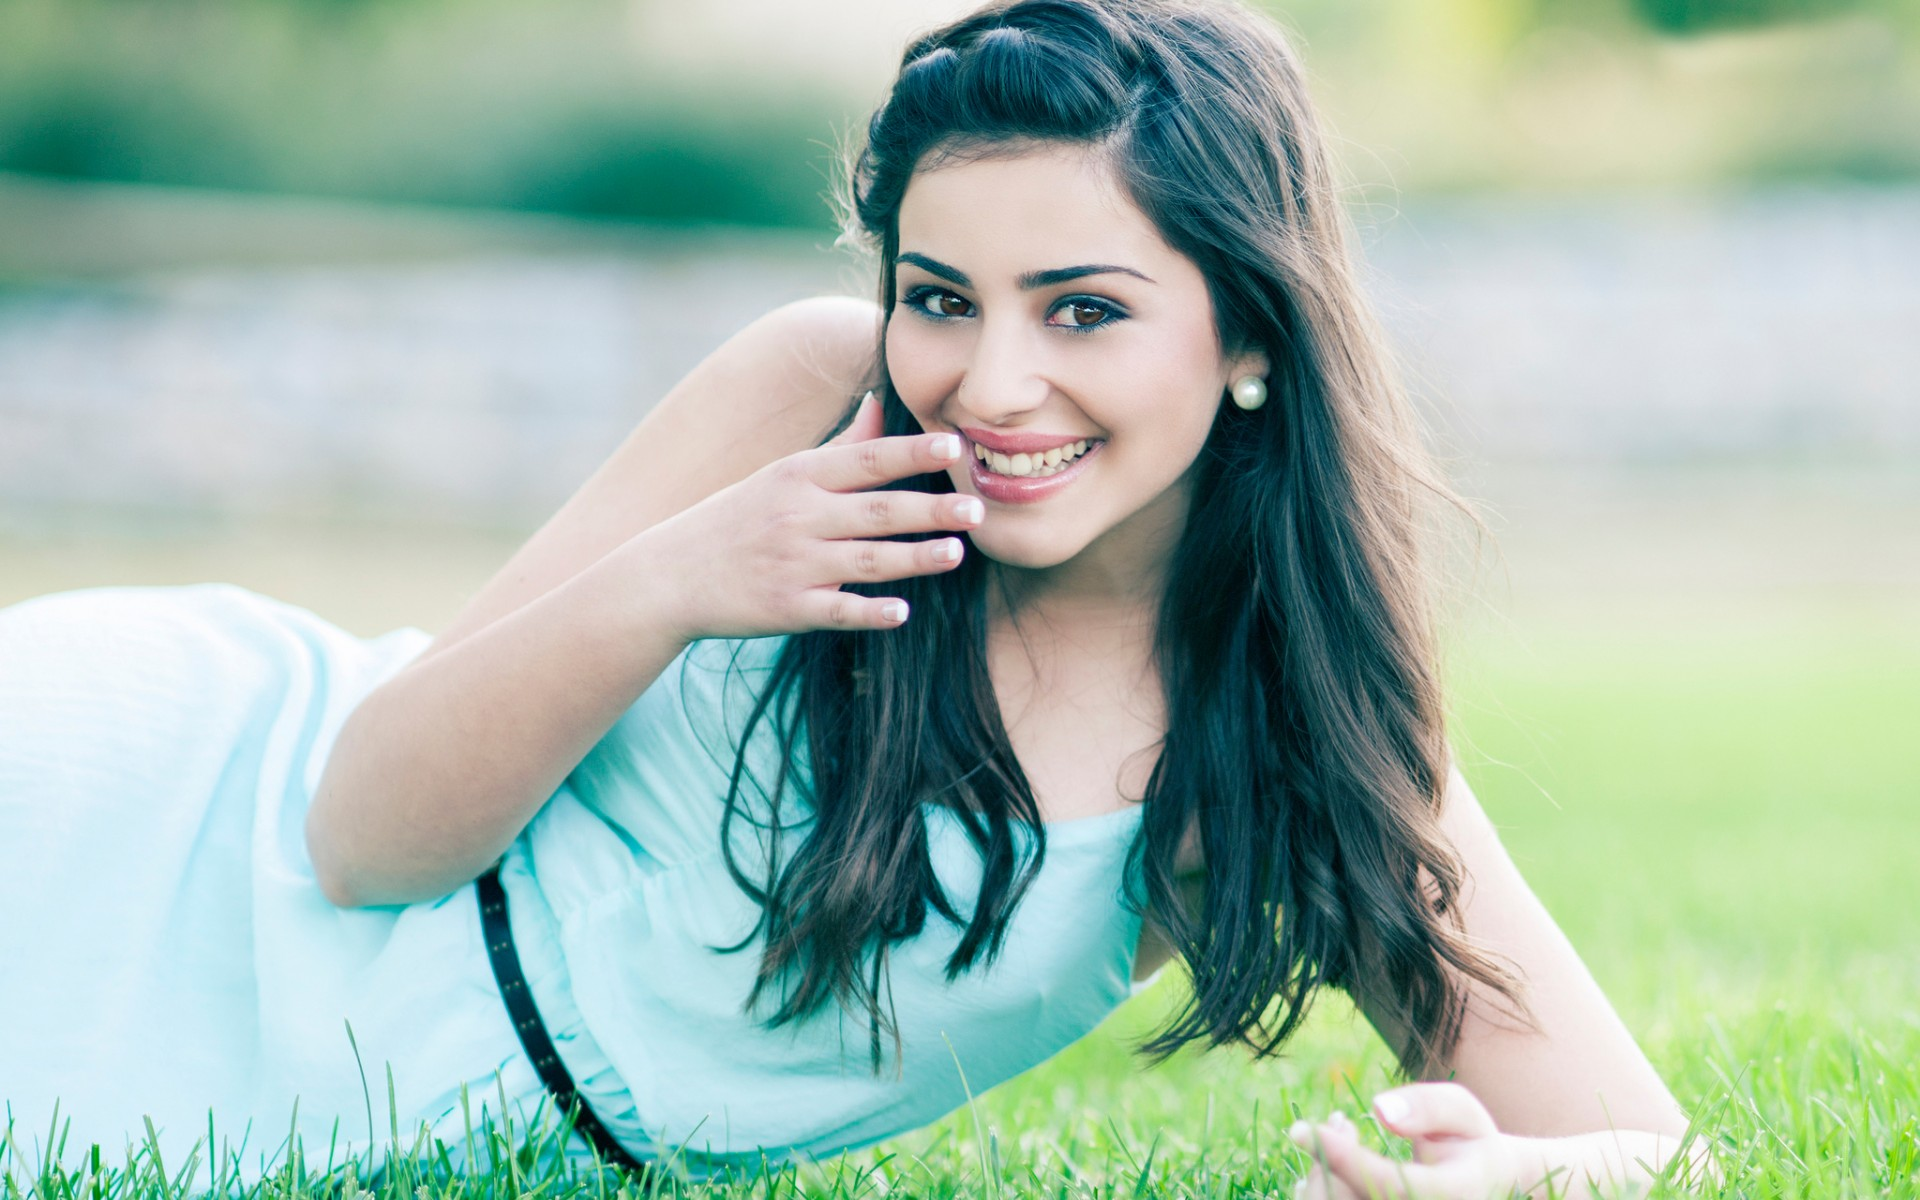 Hd Goggles Wallpaper 100 Cute Lovely Girls Profile Picture Dps For Whatsapp